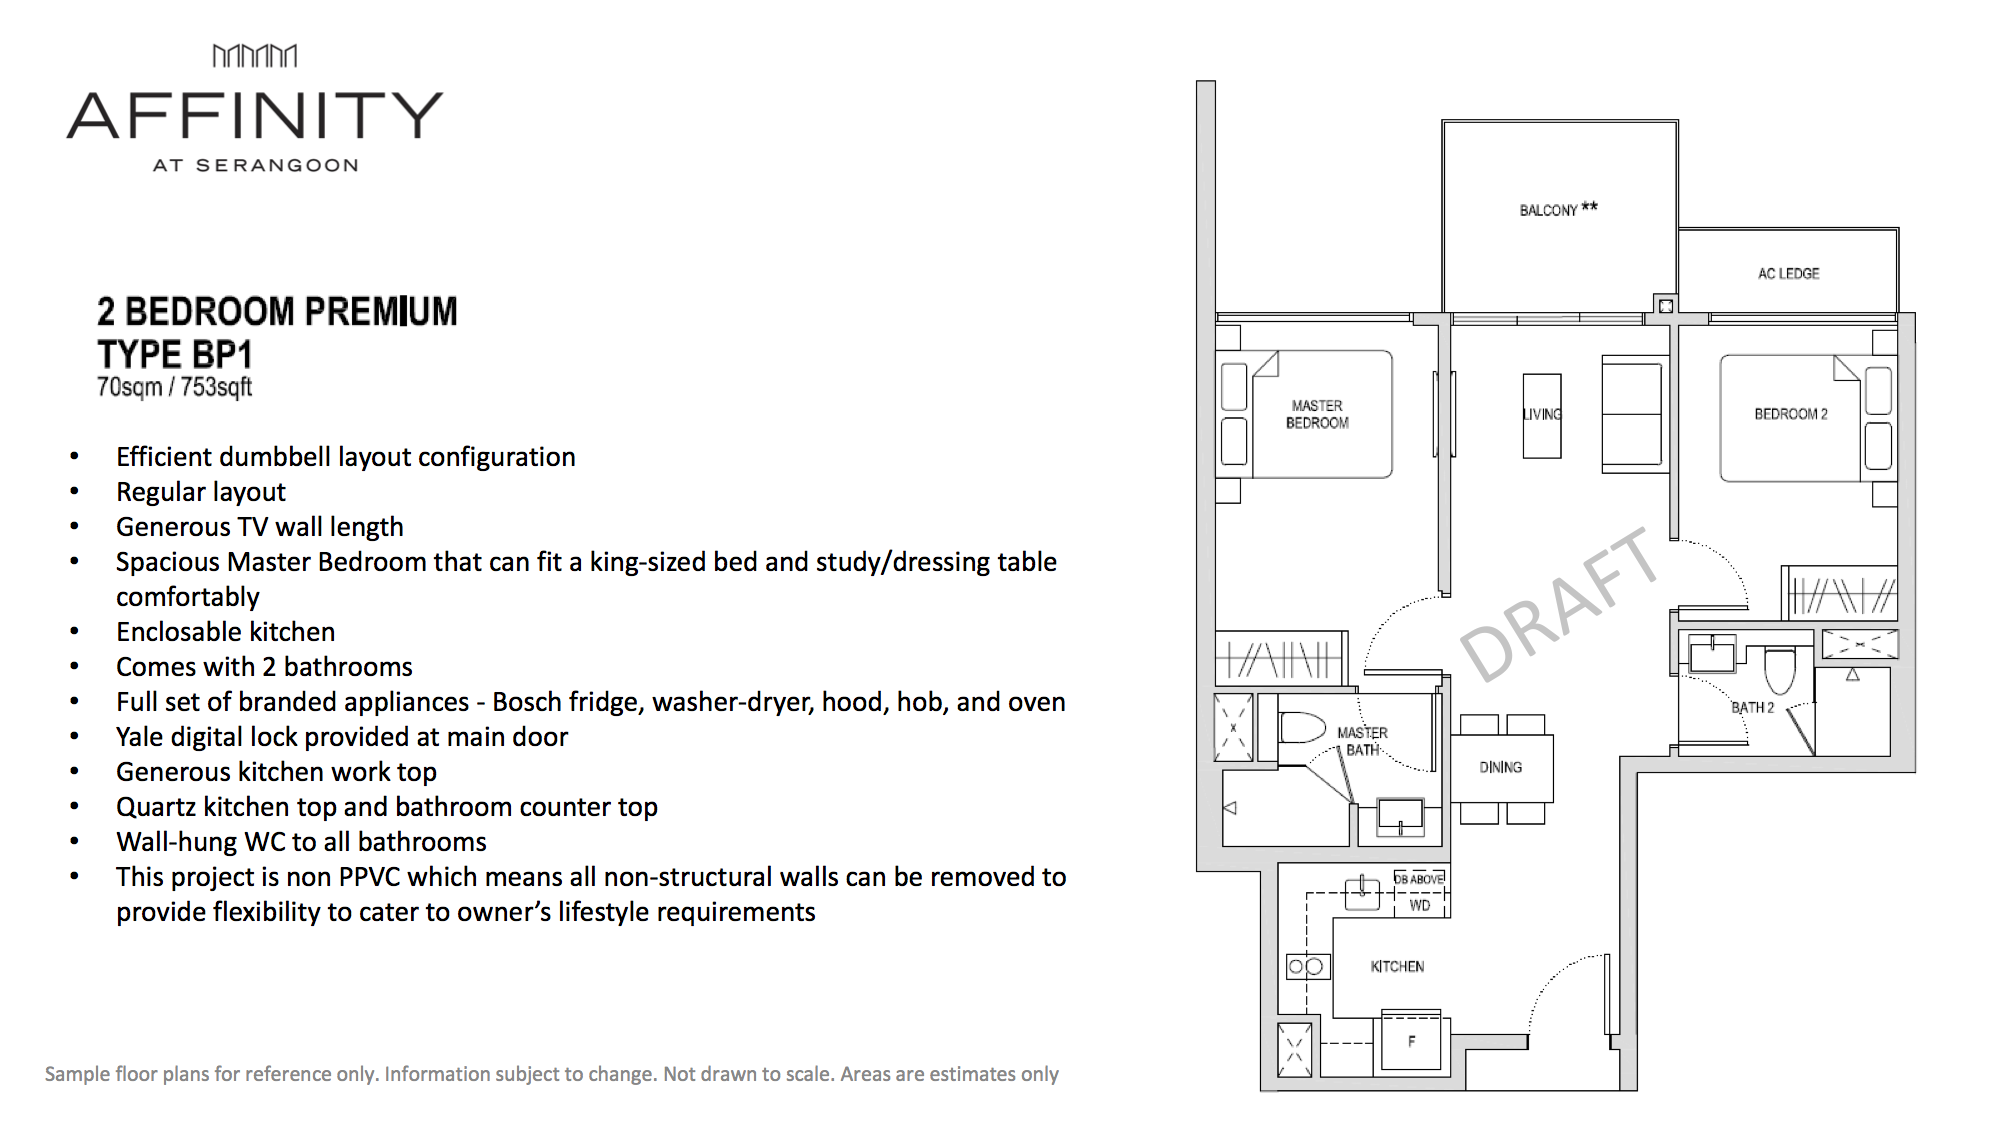 Affinity At Serangoon Floor Plan 2 Bedroom Premium